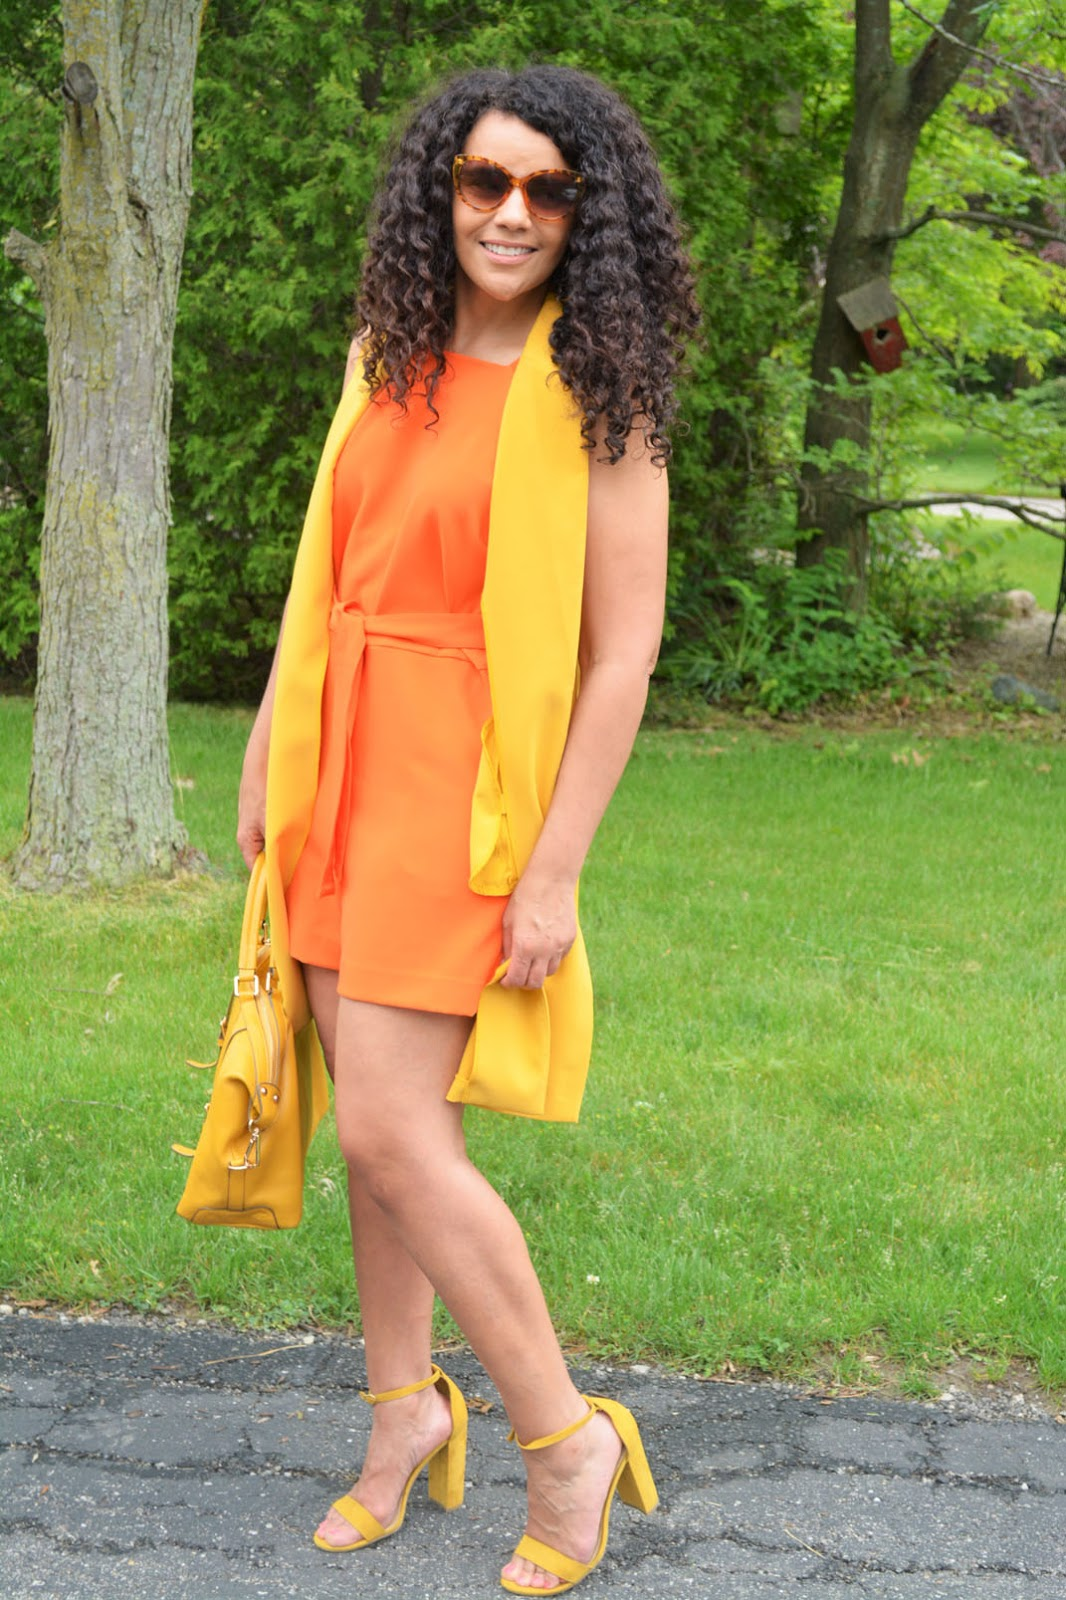 Over 40 fashion blogger Mary of Curlybyrdie Chirps in a yellow vest and orange romper suit